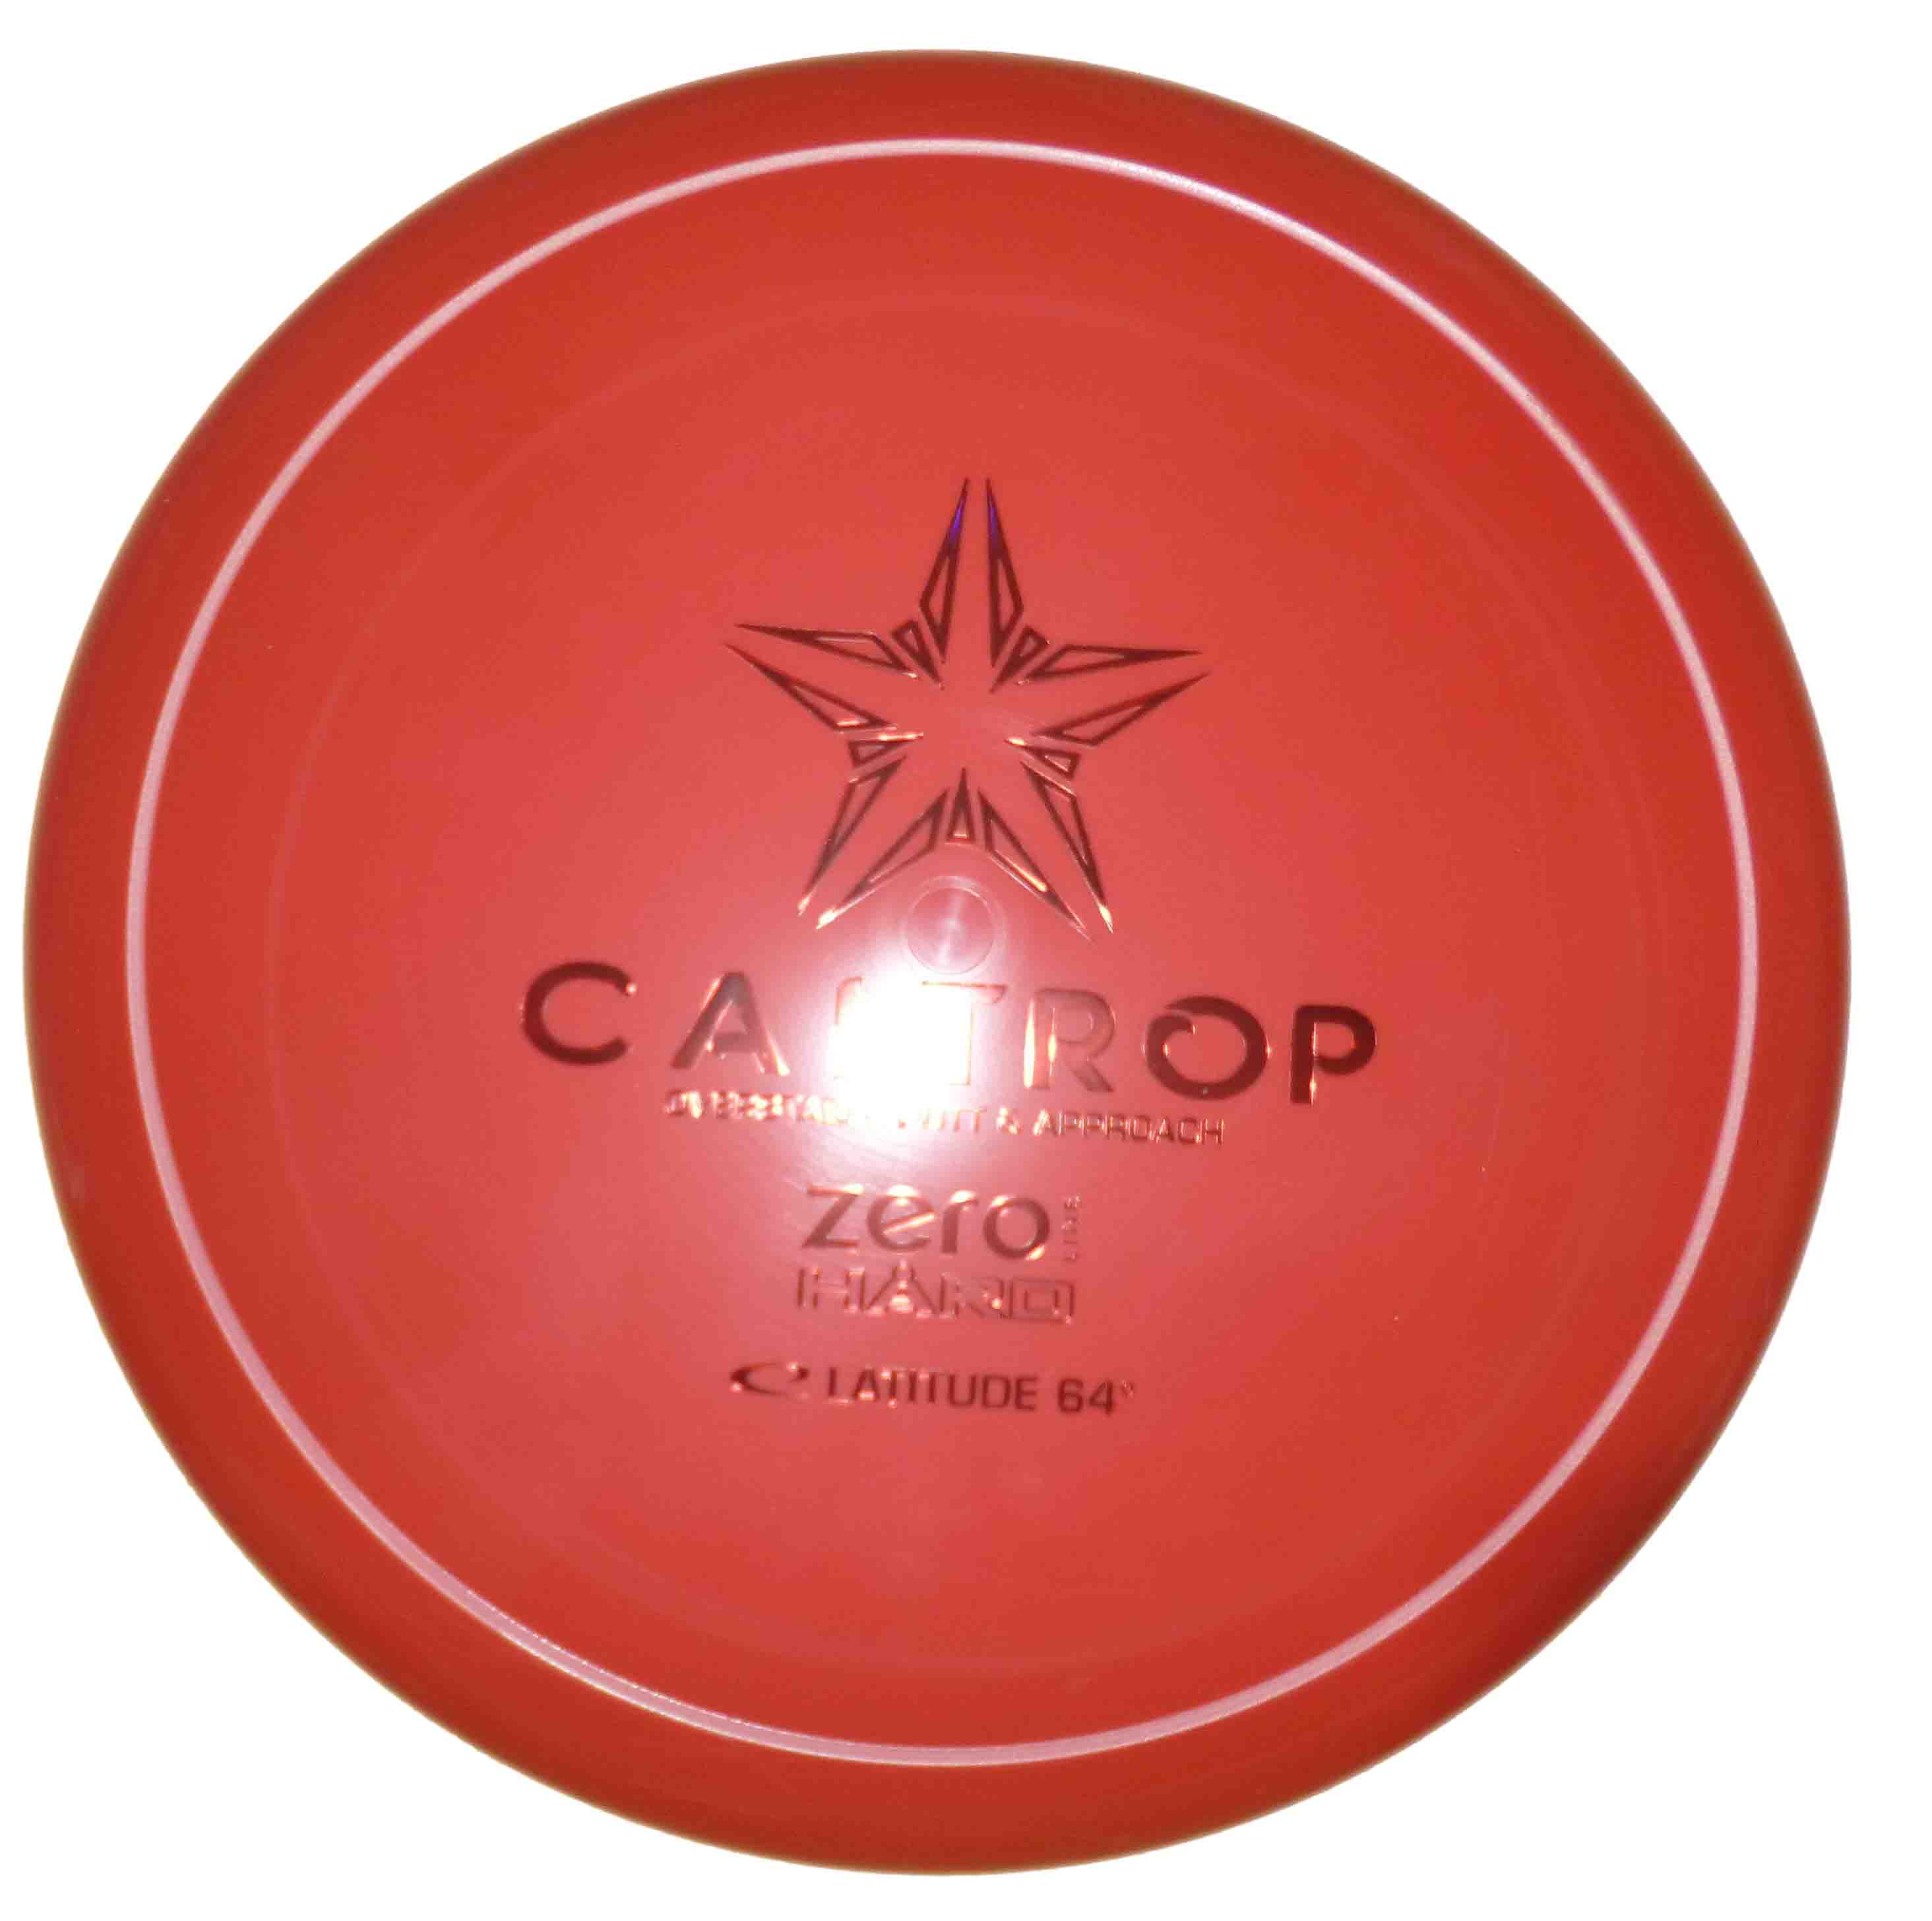 Caltrop Zero Hard red